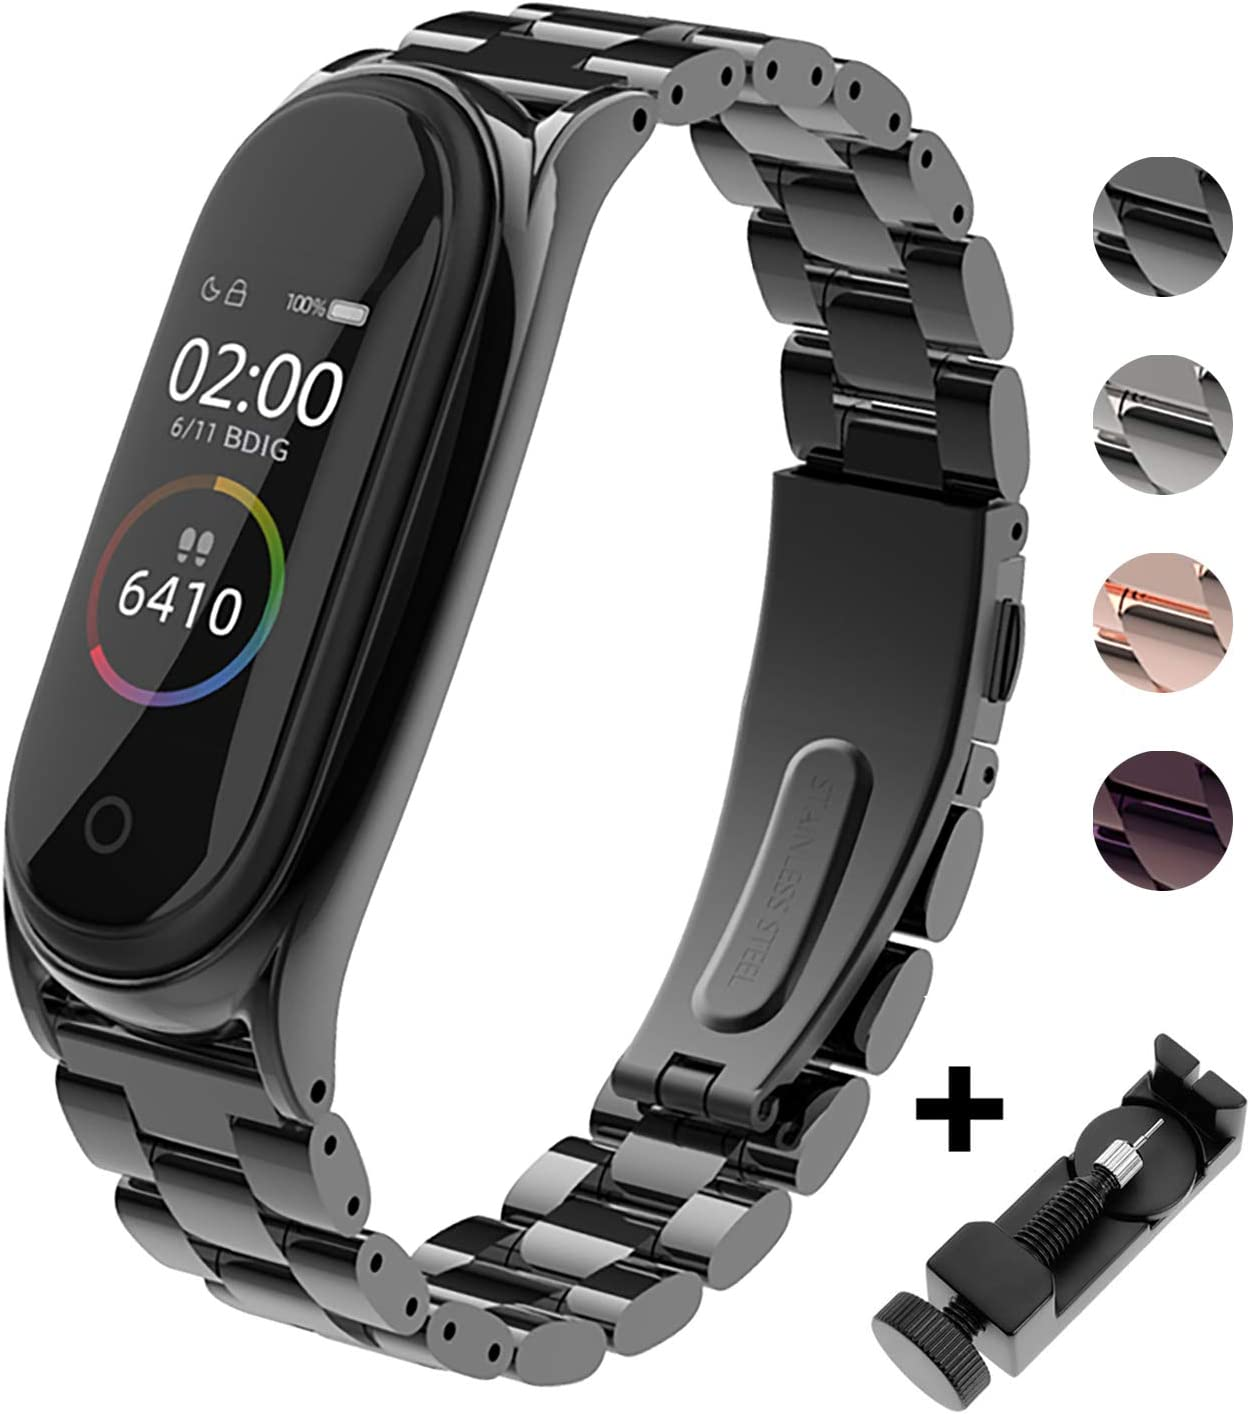 BDIG Correa Compatible Xiaomi Mi Band 4 Correas Metal,Pulsera de Acero Inoxidable Agradable para Mi Band 4 Correa (No Host)(Plus Negro)